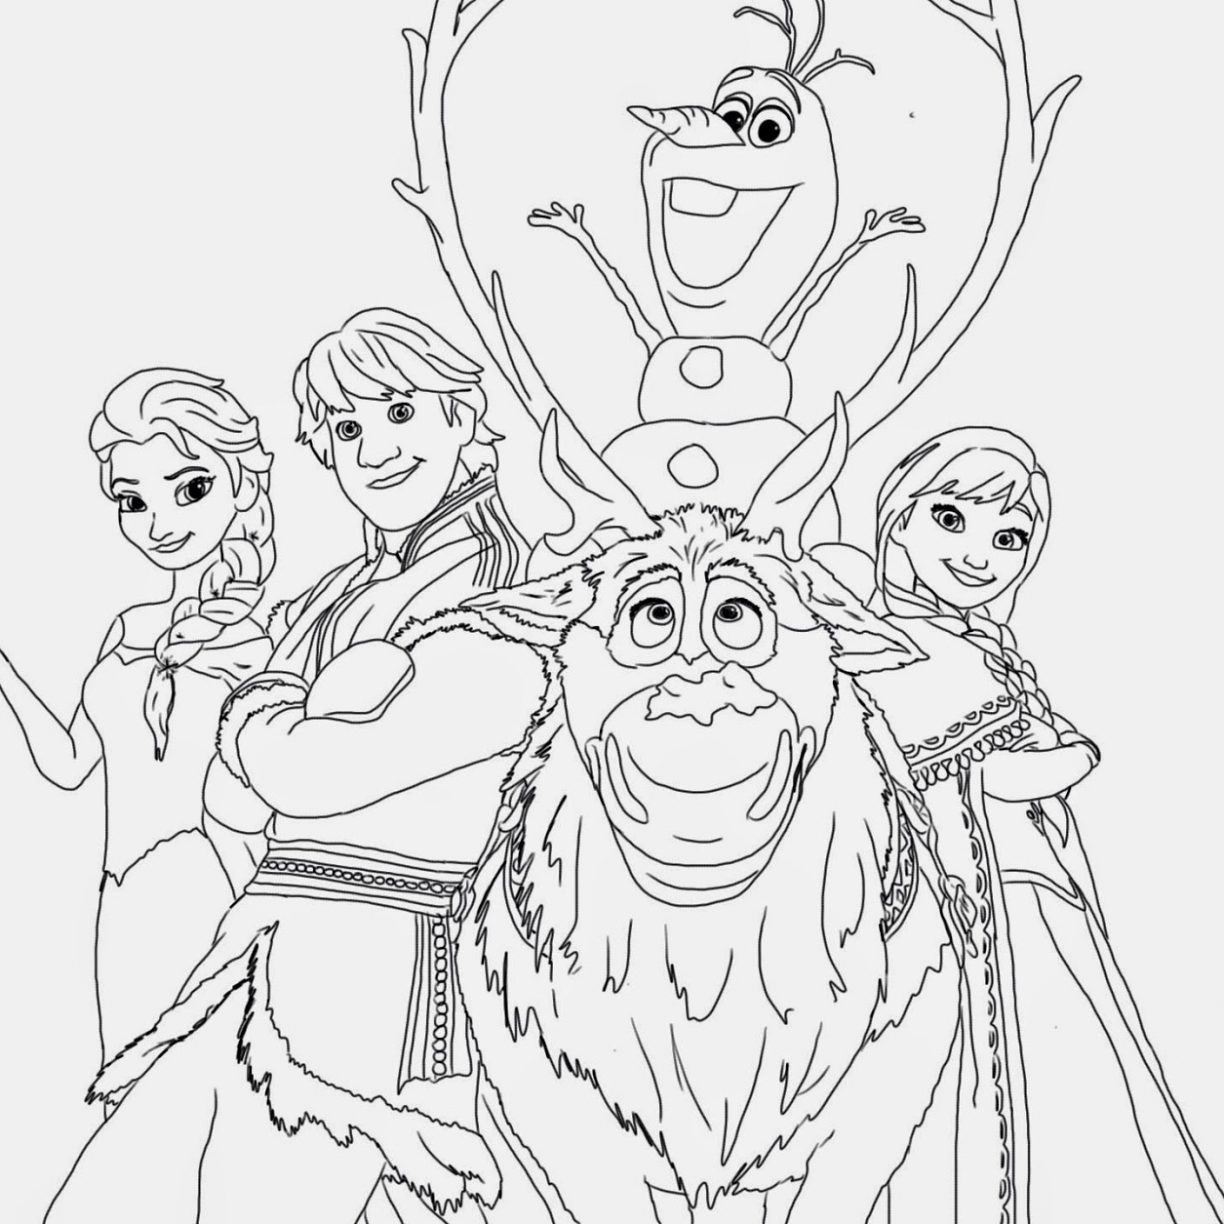 Disney Frozen Drawing at GetDrawings.com | Free for personal use ...